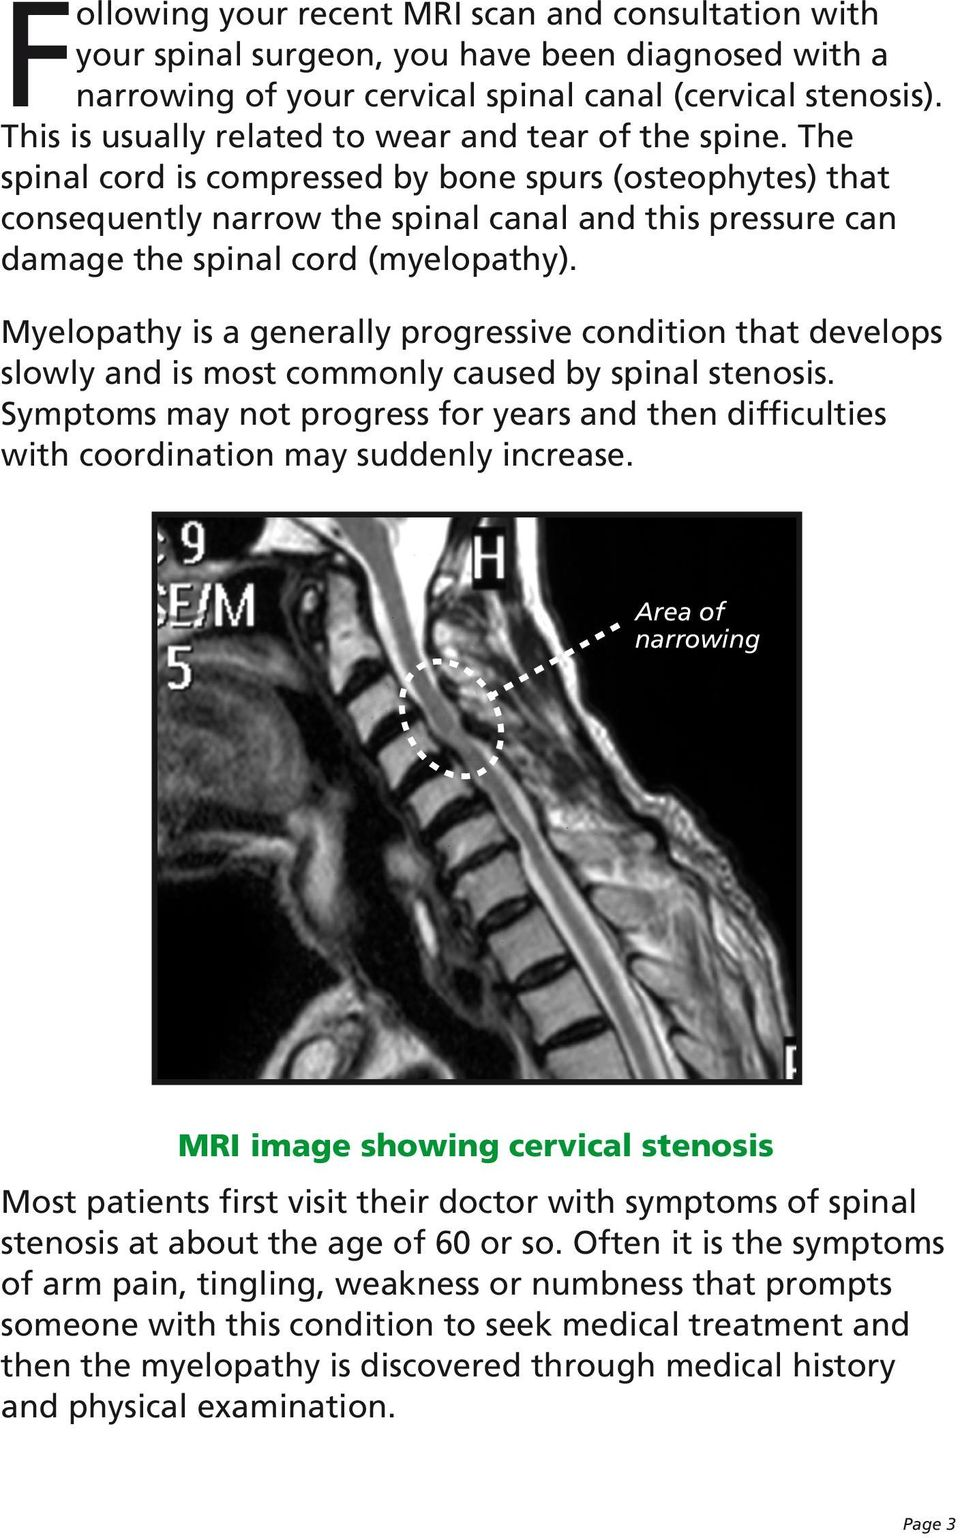 The spinal cord is compressed by bone spurs (osteophytes) that consequently narrow the spinal canal and this pressure can damage the spinal cord (myelopathy).